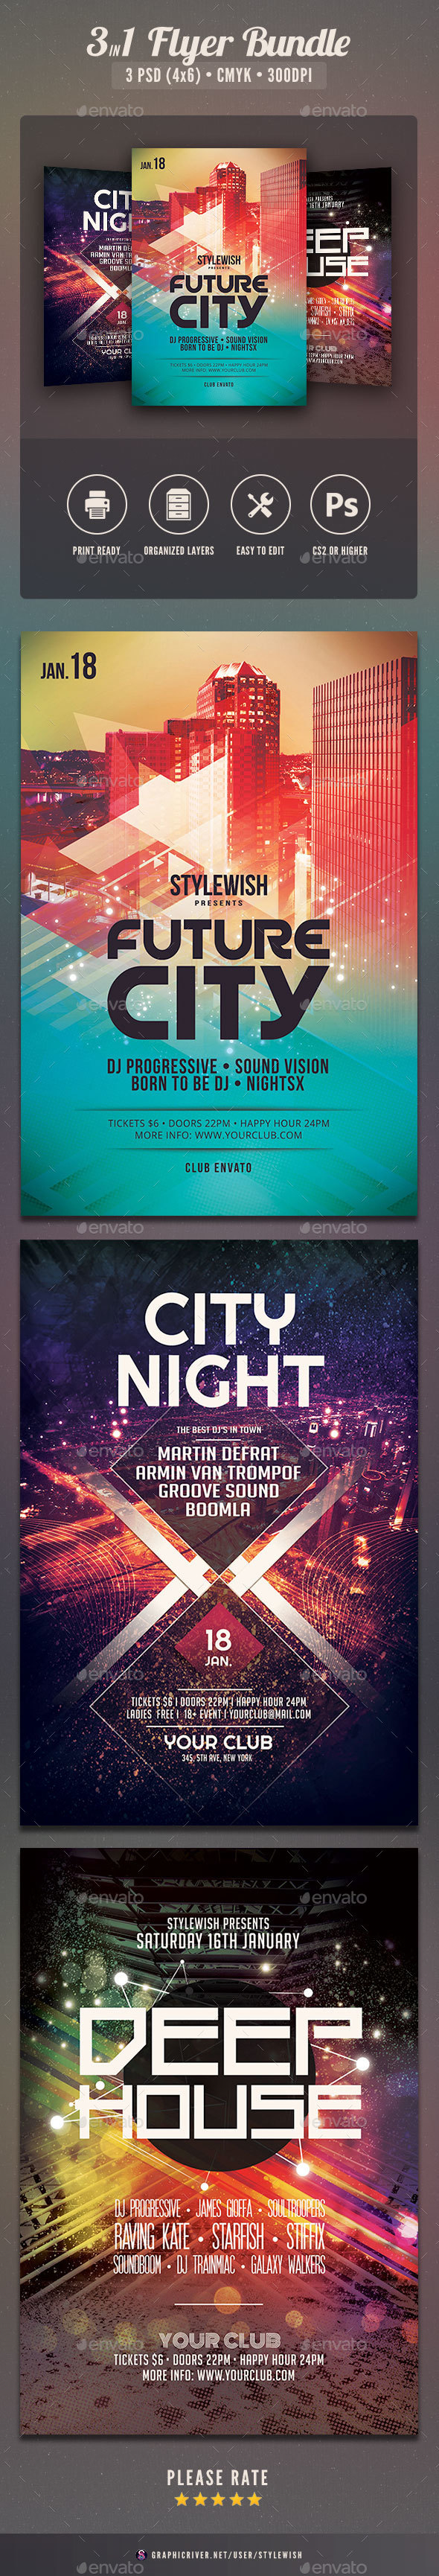 Party Flyer Bundle Vol12 - Clubs & Parties Events